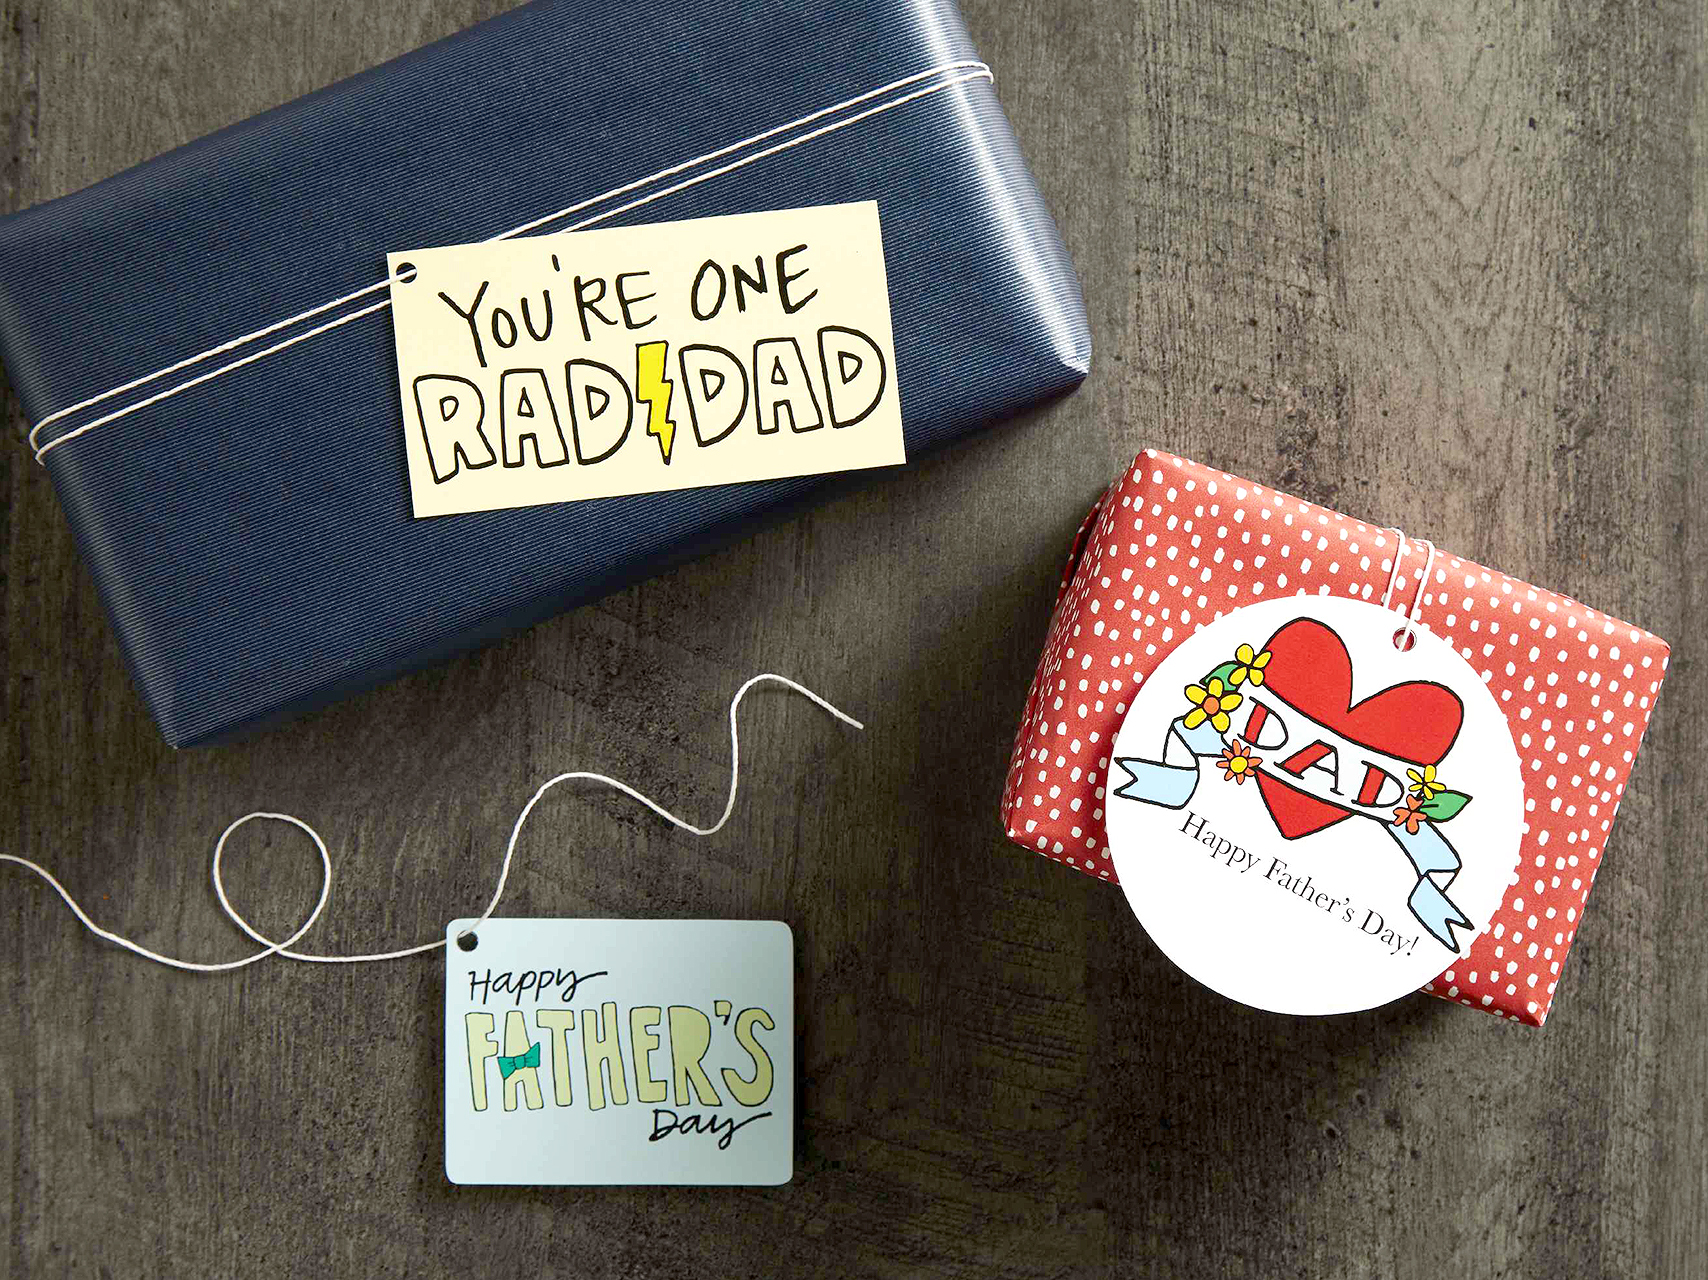 illustrative fathers day tags for gifts